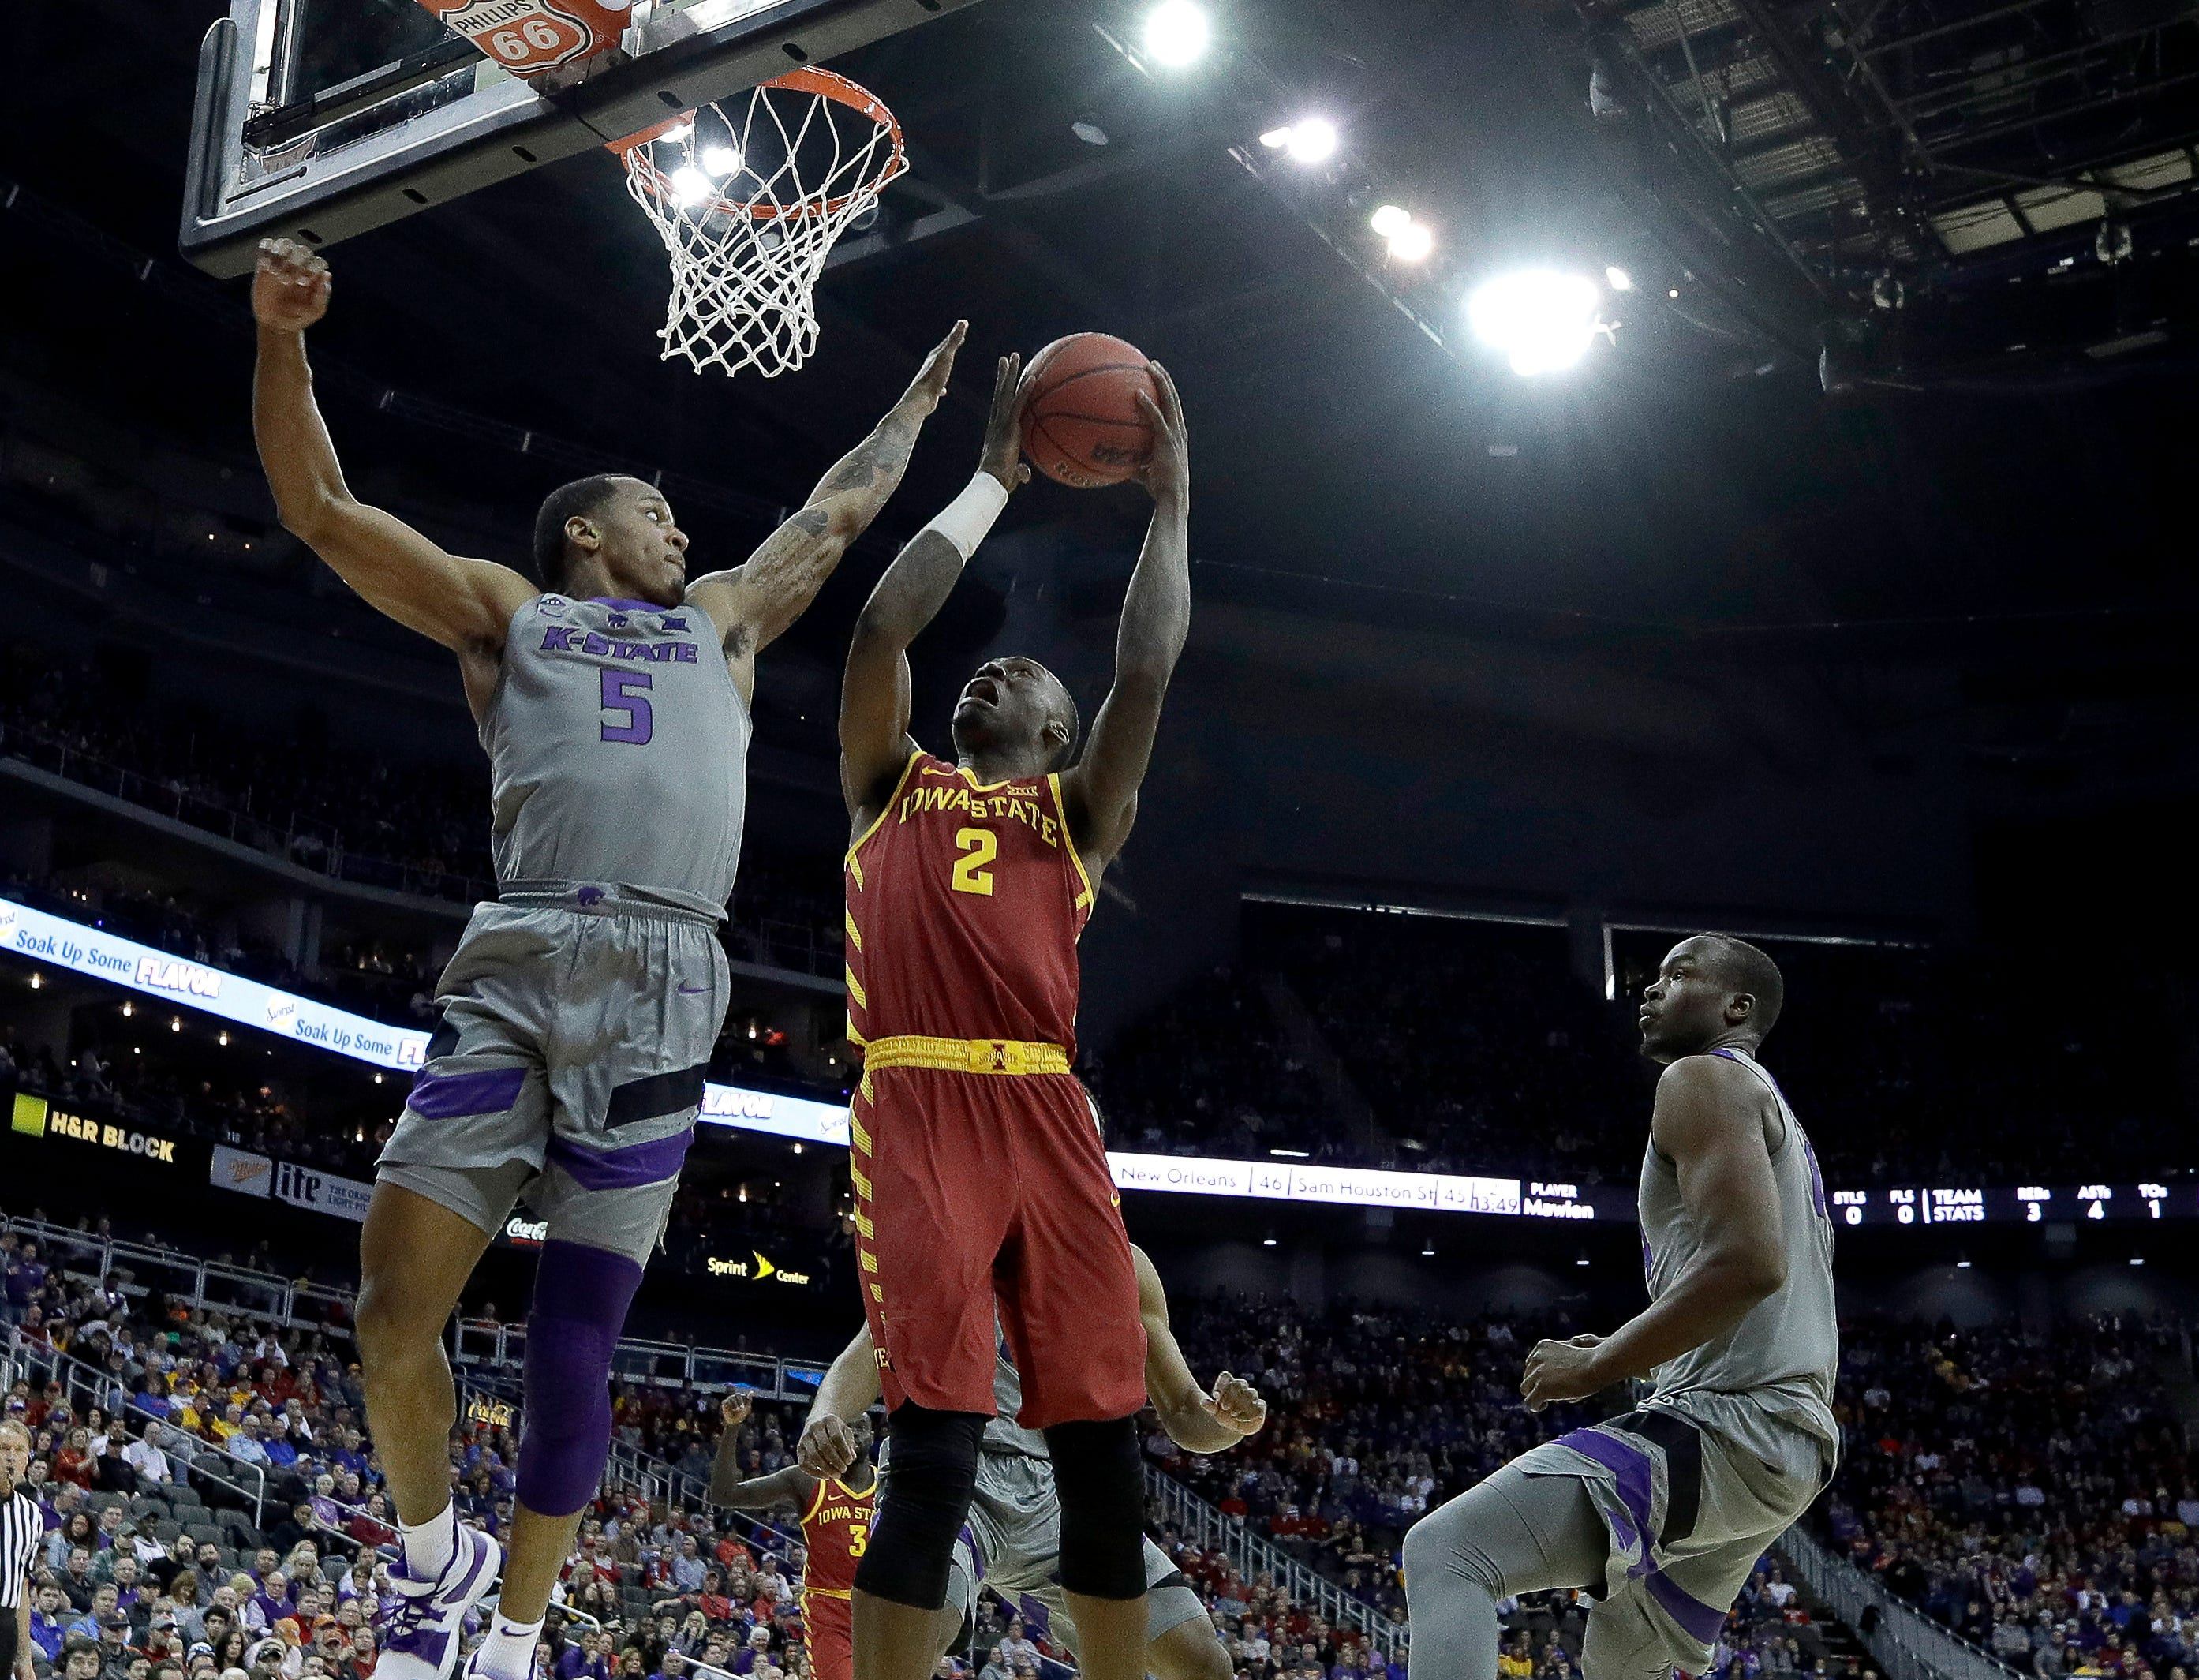 Iowa State's Cameron Lard (2) shoots while under pressure from Kansas State's Barry Brown Jr. (5) during the first half of an NCAA college basketball game in the Big 12 men's tournament Friday, March 15, 2019, in Kansas City, Mo. (AP Photo/Charlie Riedel)